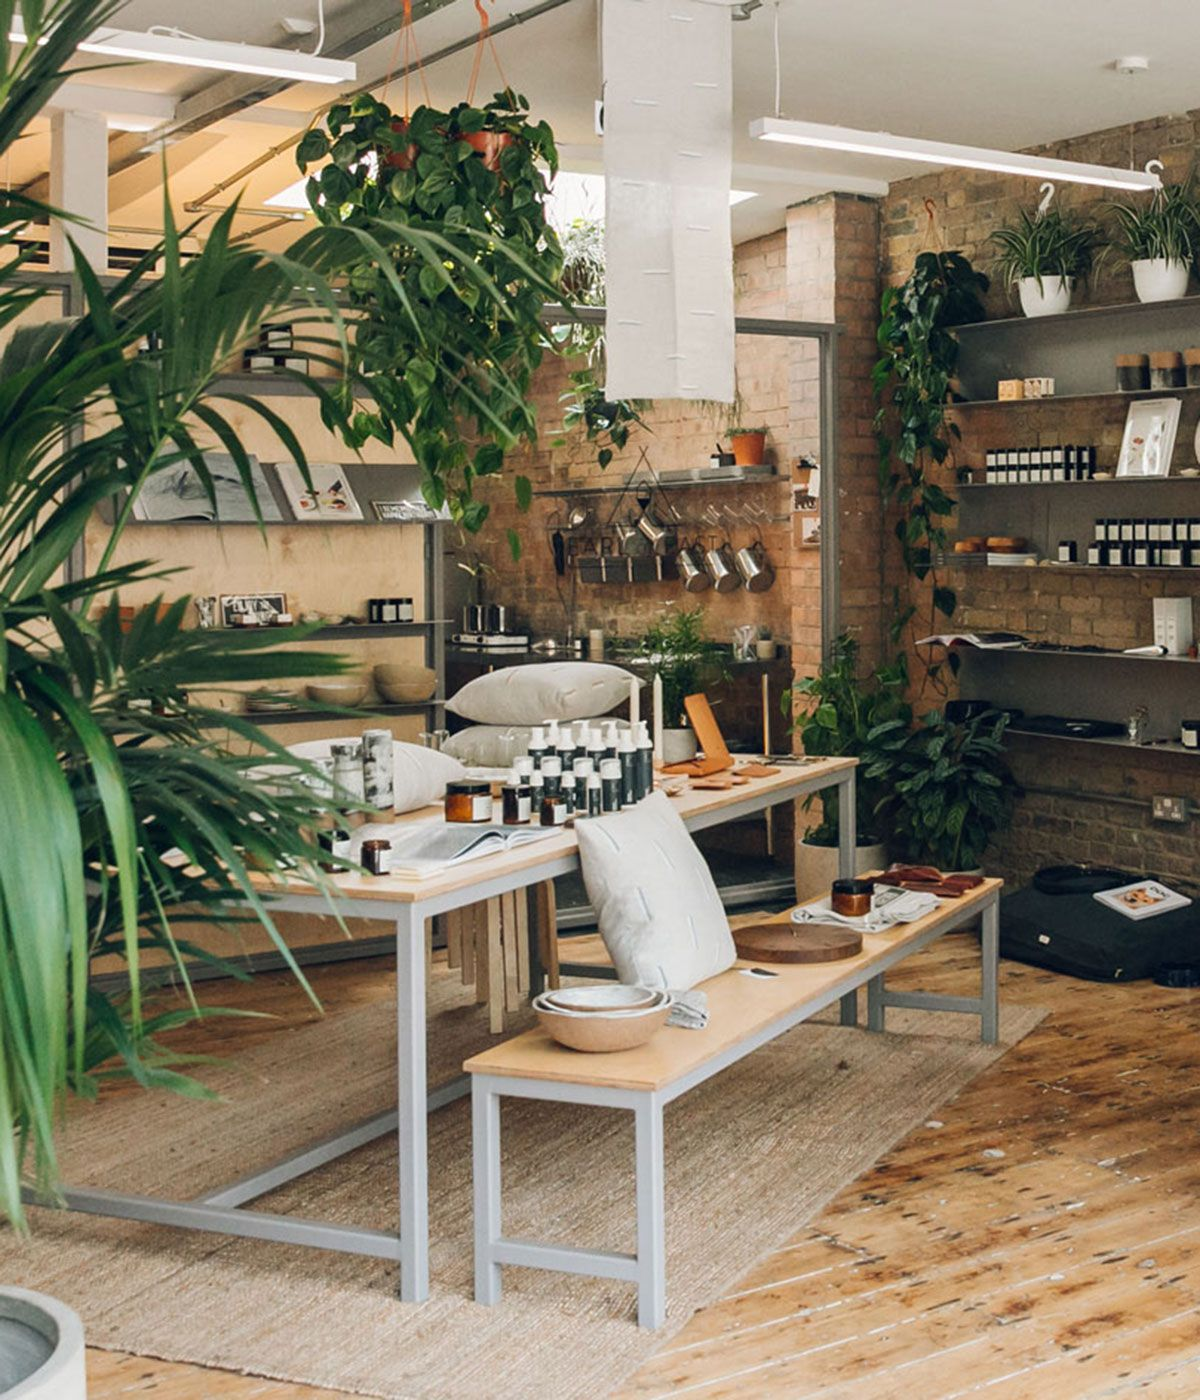 Home Decor Stores Los Angeles: 11 High-concept Stores Around The Globe Worth Travelling